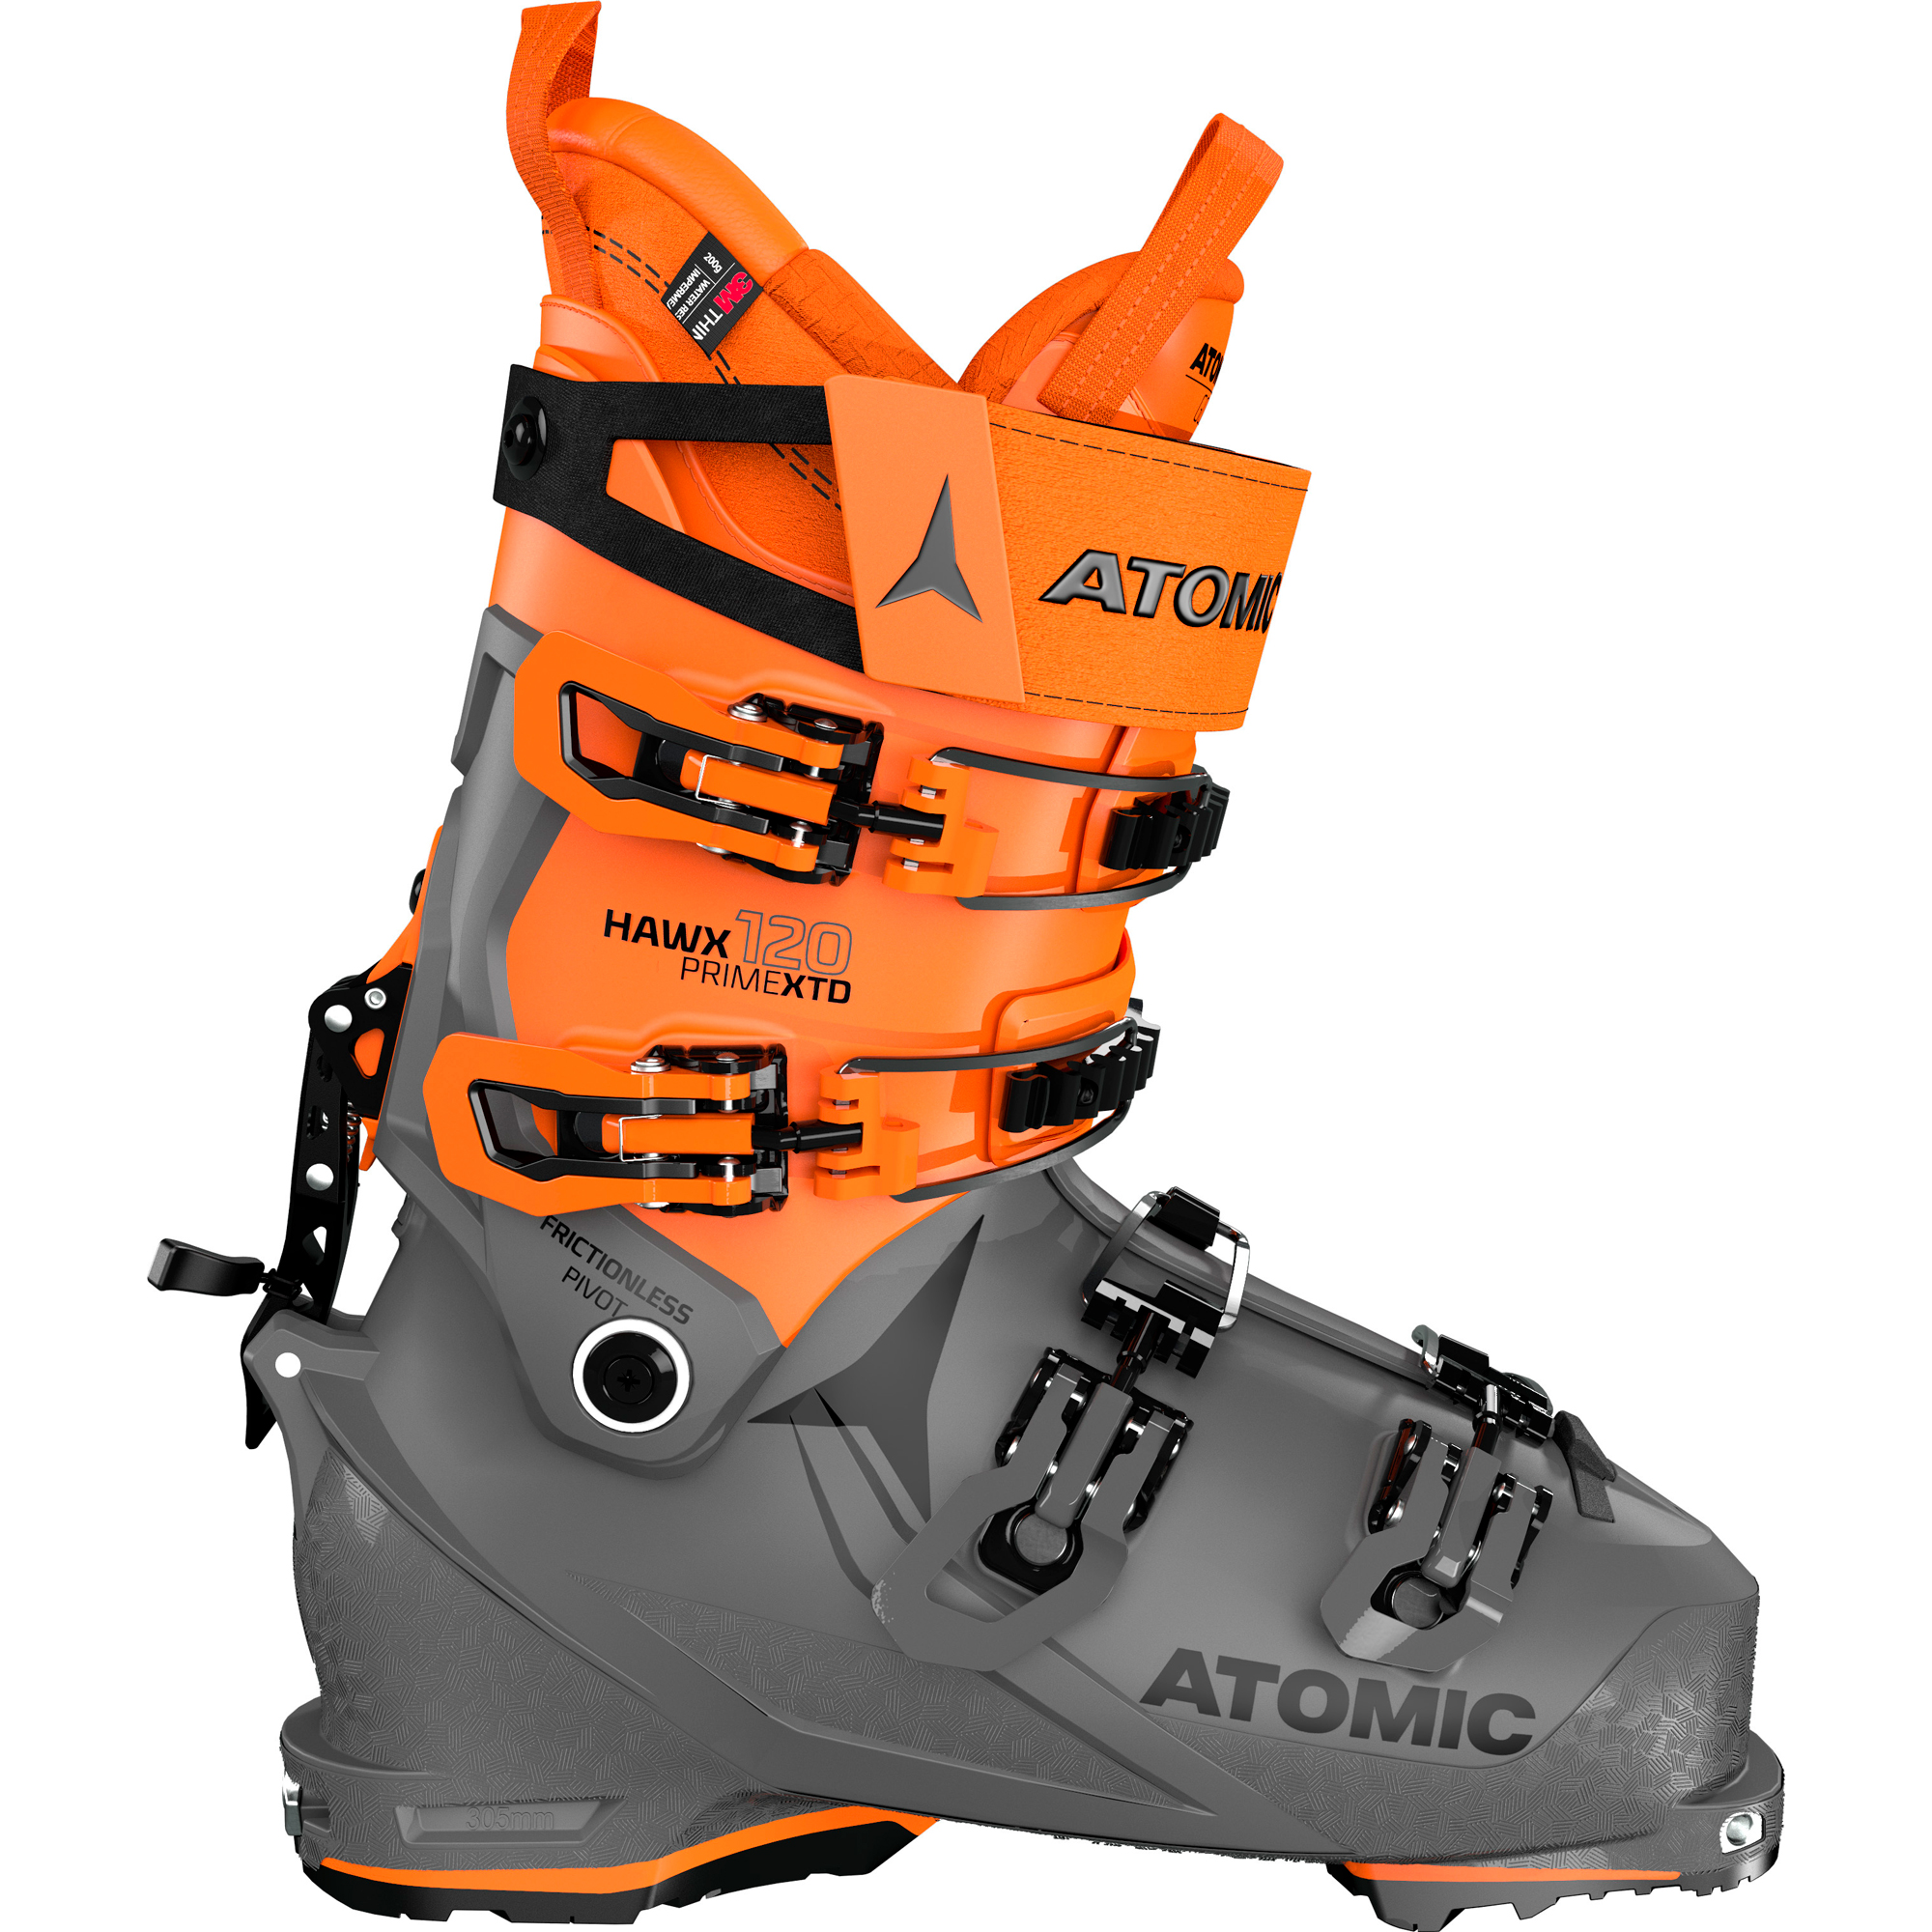 AE5021700_0_HAWX_PRIME_XTD_120_ANTHRACITE_ORANGE.jpg.cq5dam.web.3027.2566